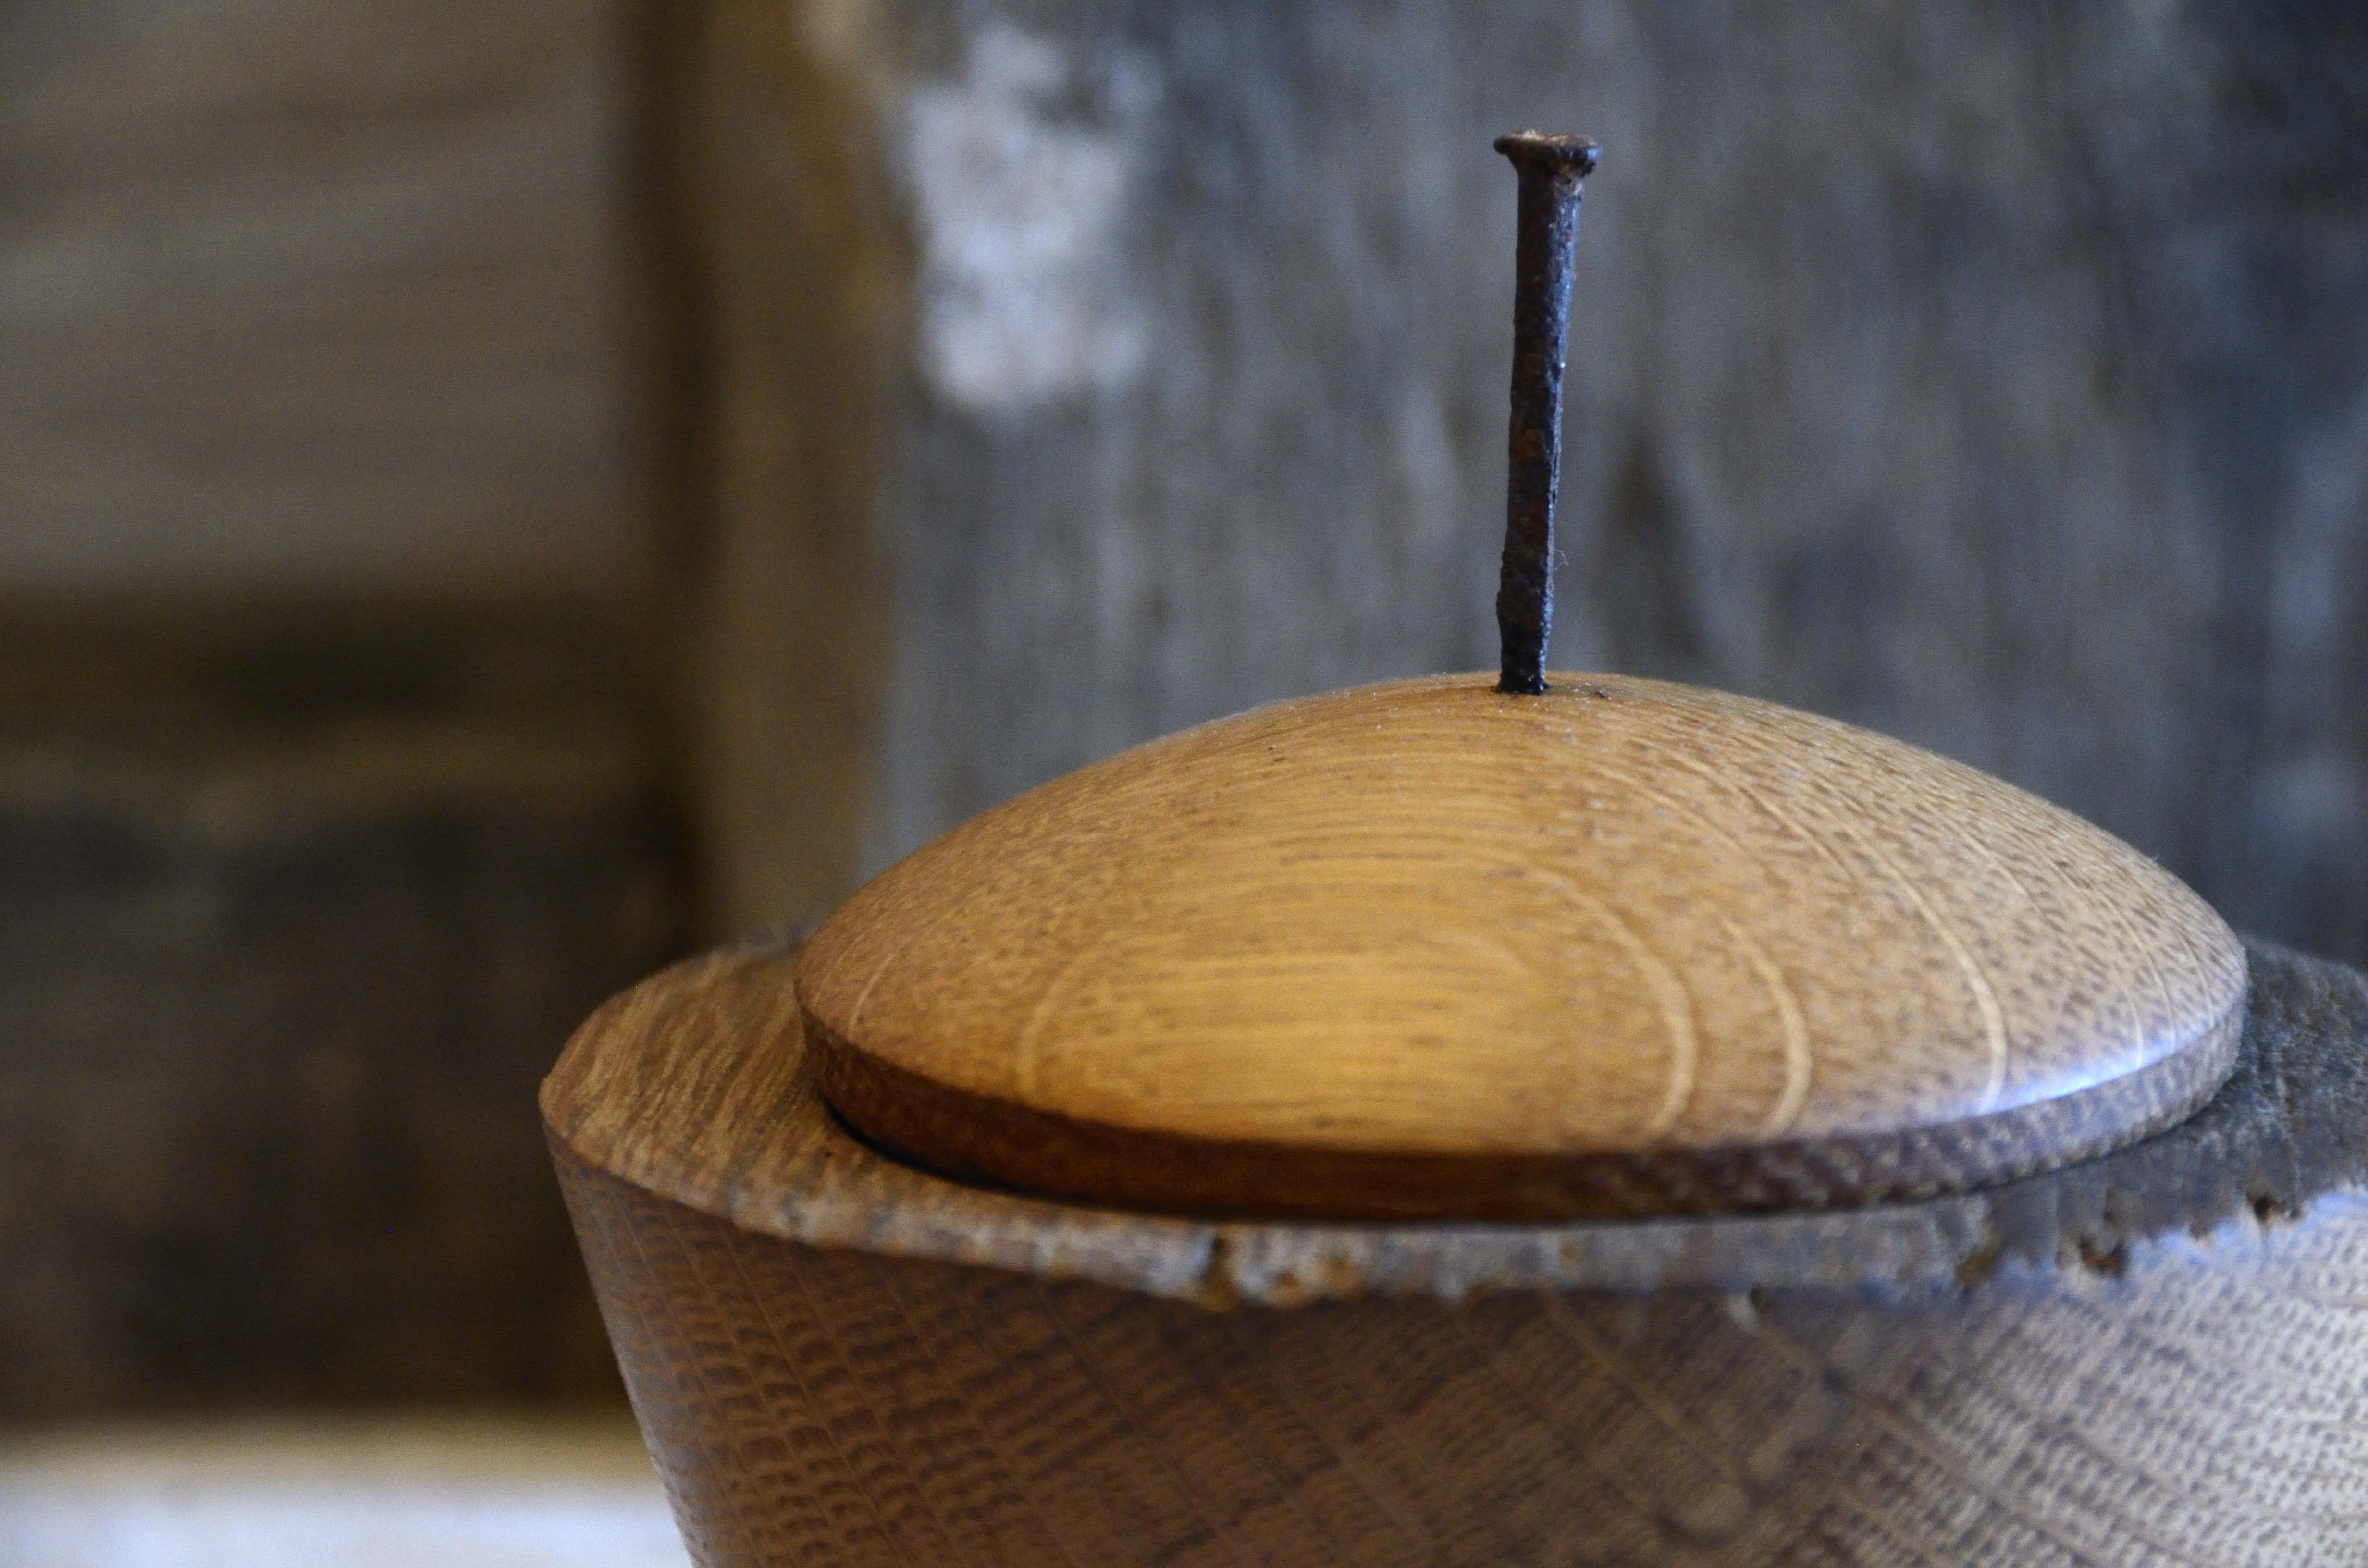 lidded vessel handcrafted on lathe with antique nail finial